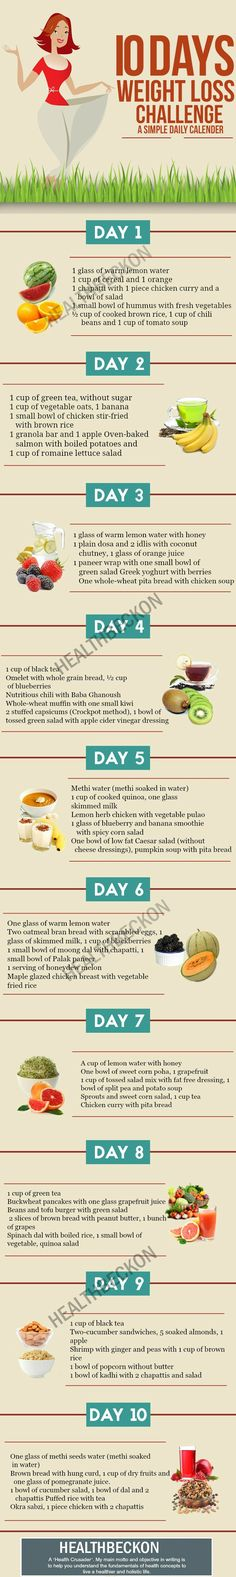 Weight loss motivation and great weight loss tips here - http://perfectsdiets.blogspot.com/2015/06/what-is-paleo-diet-beginners-guide.html